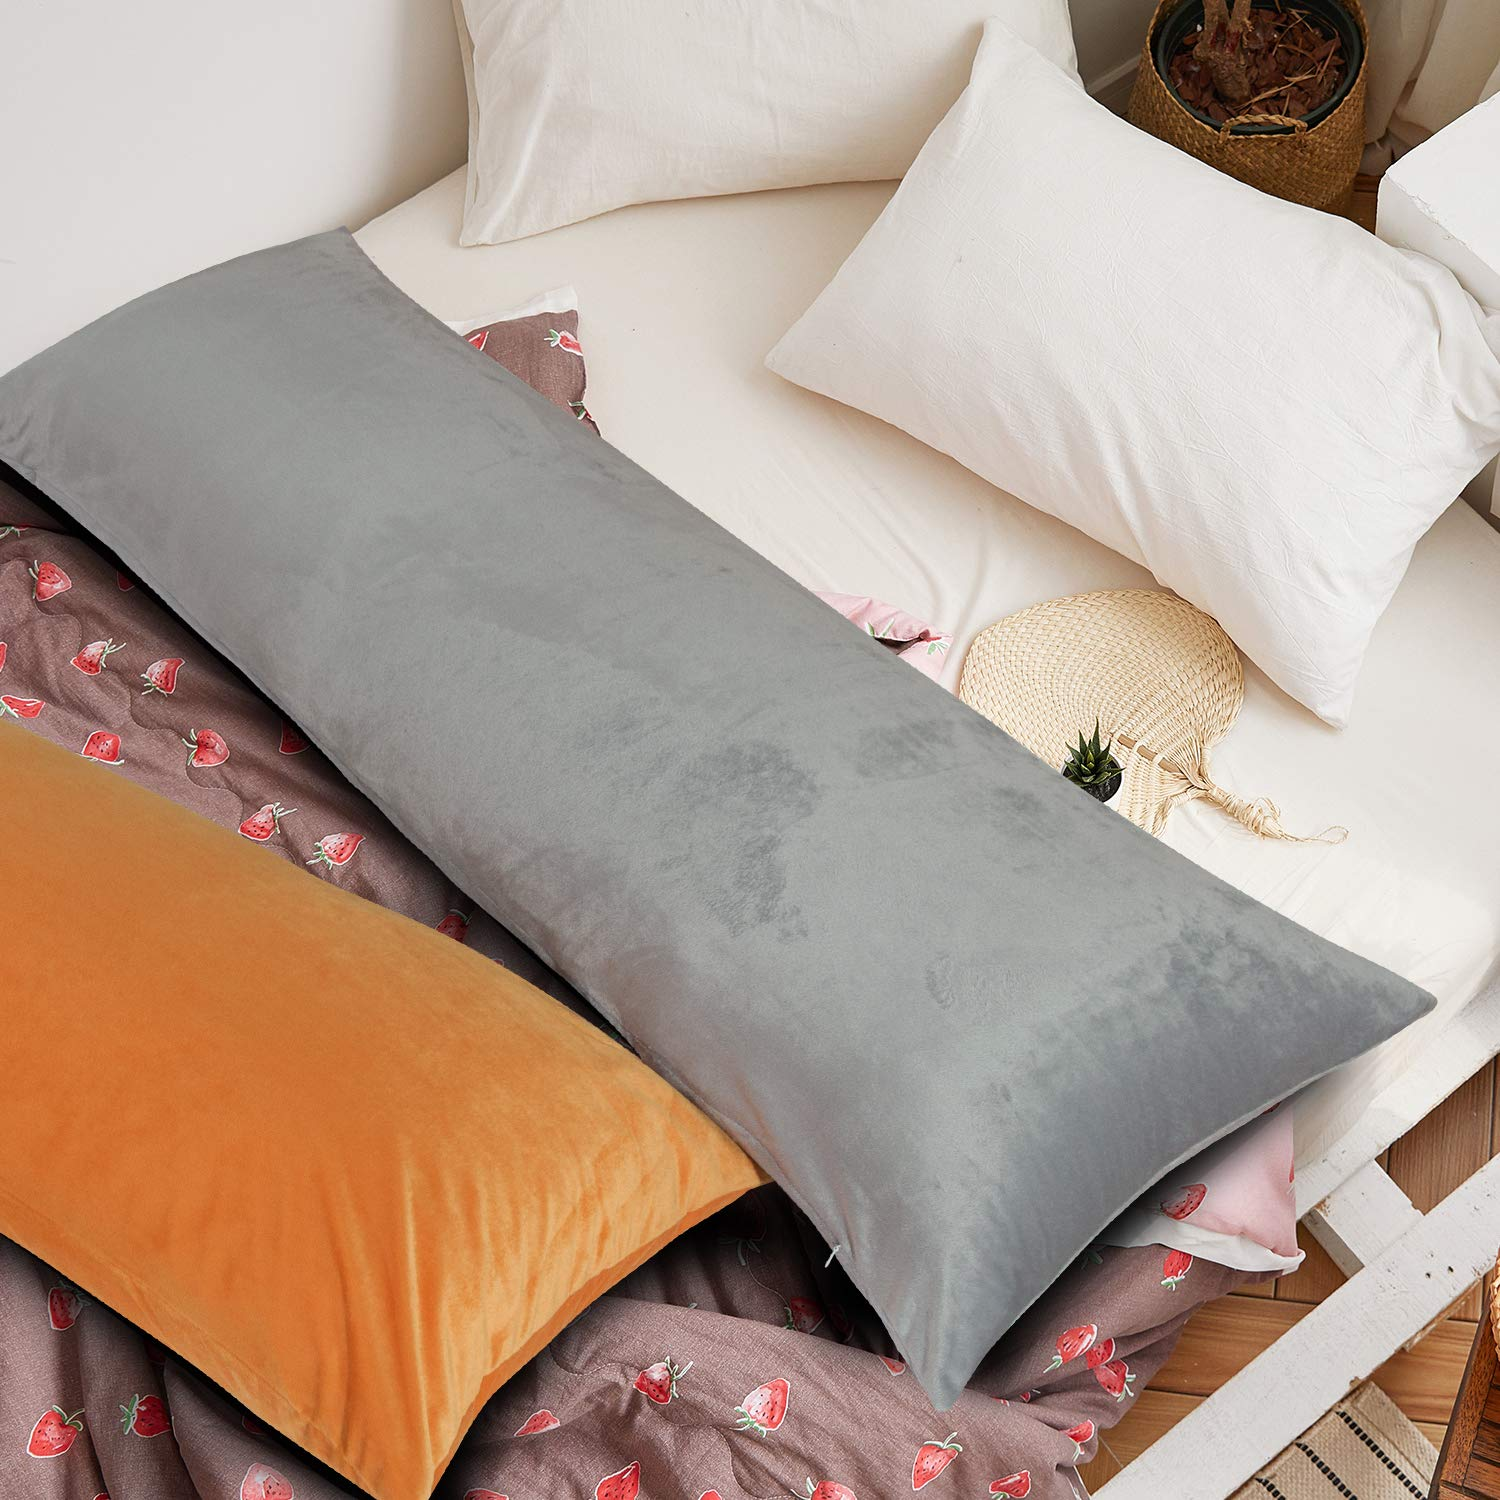 for Adults Pregnant Women Luxury Solid Color Body Pillowcase 20 x 54 Inches Smoke Grey NTBAY Zippered Velvet Body Pillow Cover